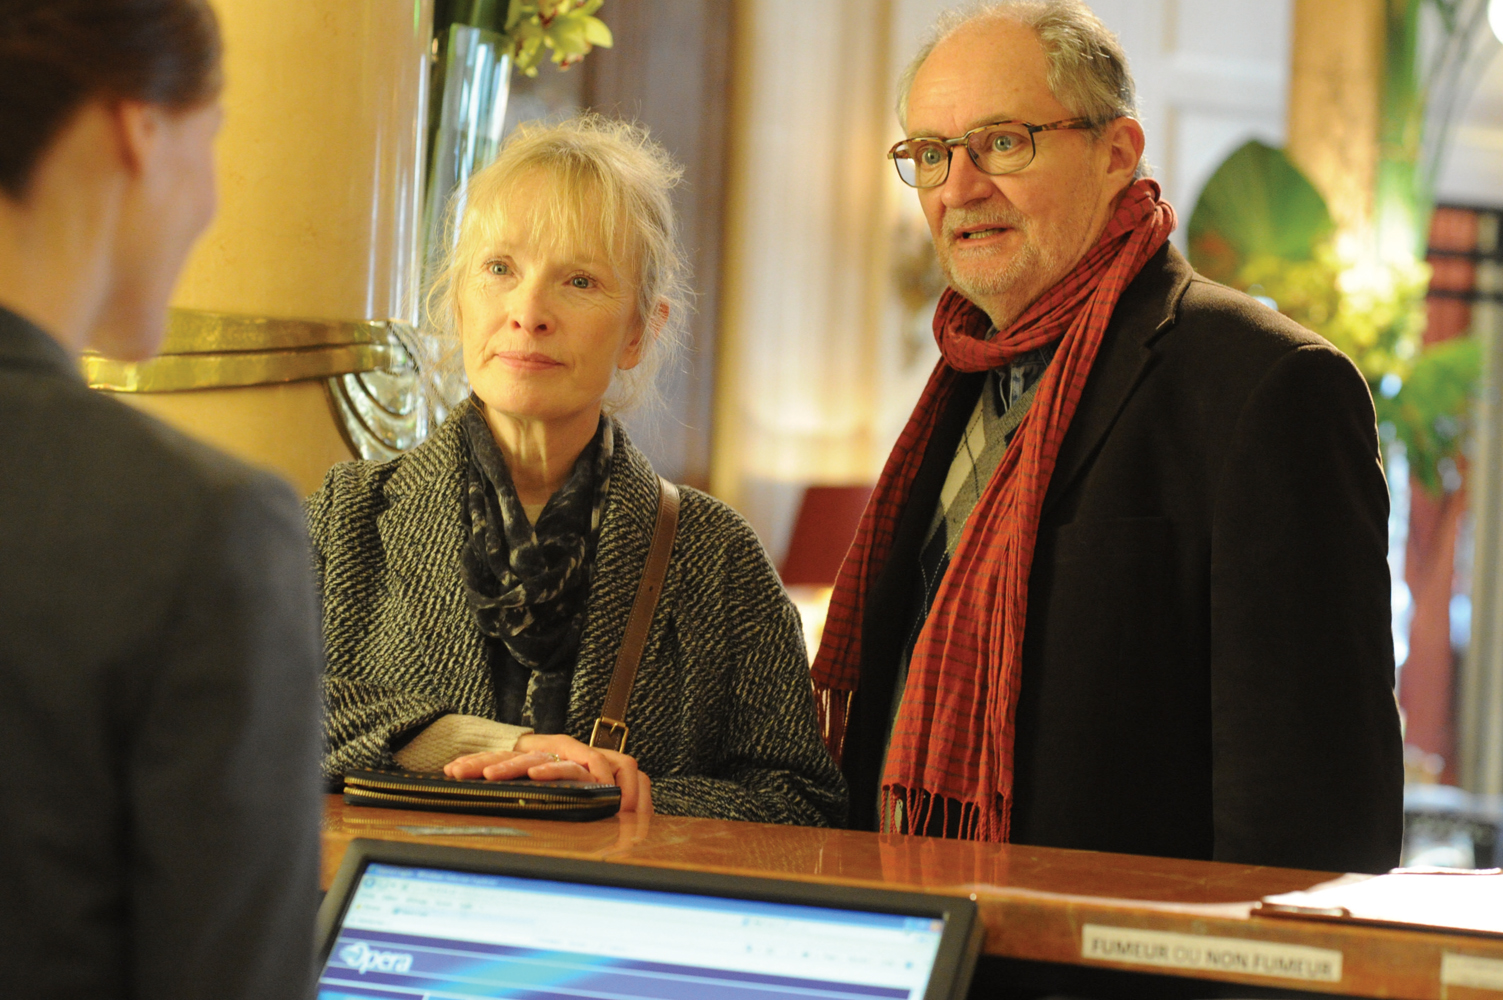 http://www.ifi.ie/wp-content/uploads/le-weekenddirected-by-roger-michellstarring-lindsay-duncan-and-jim-broadbent4.jpg